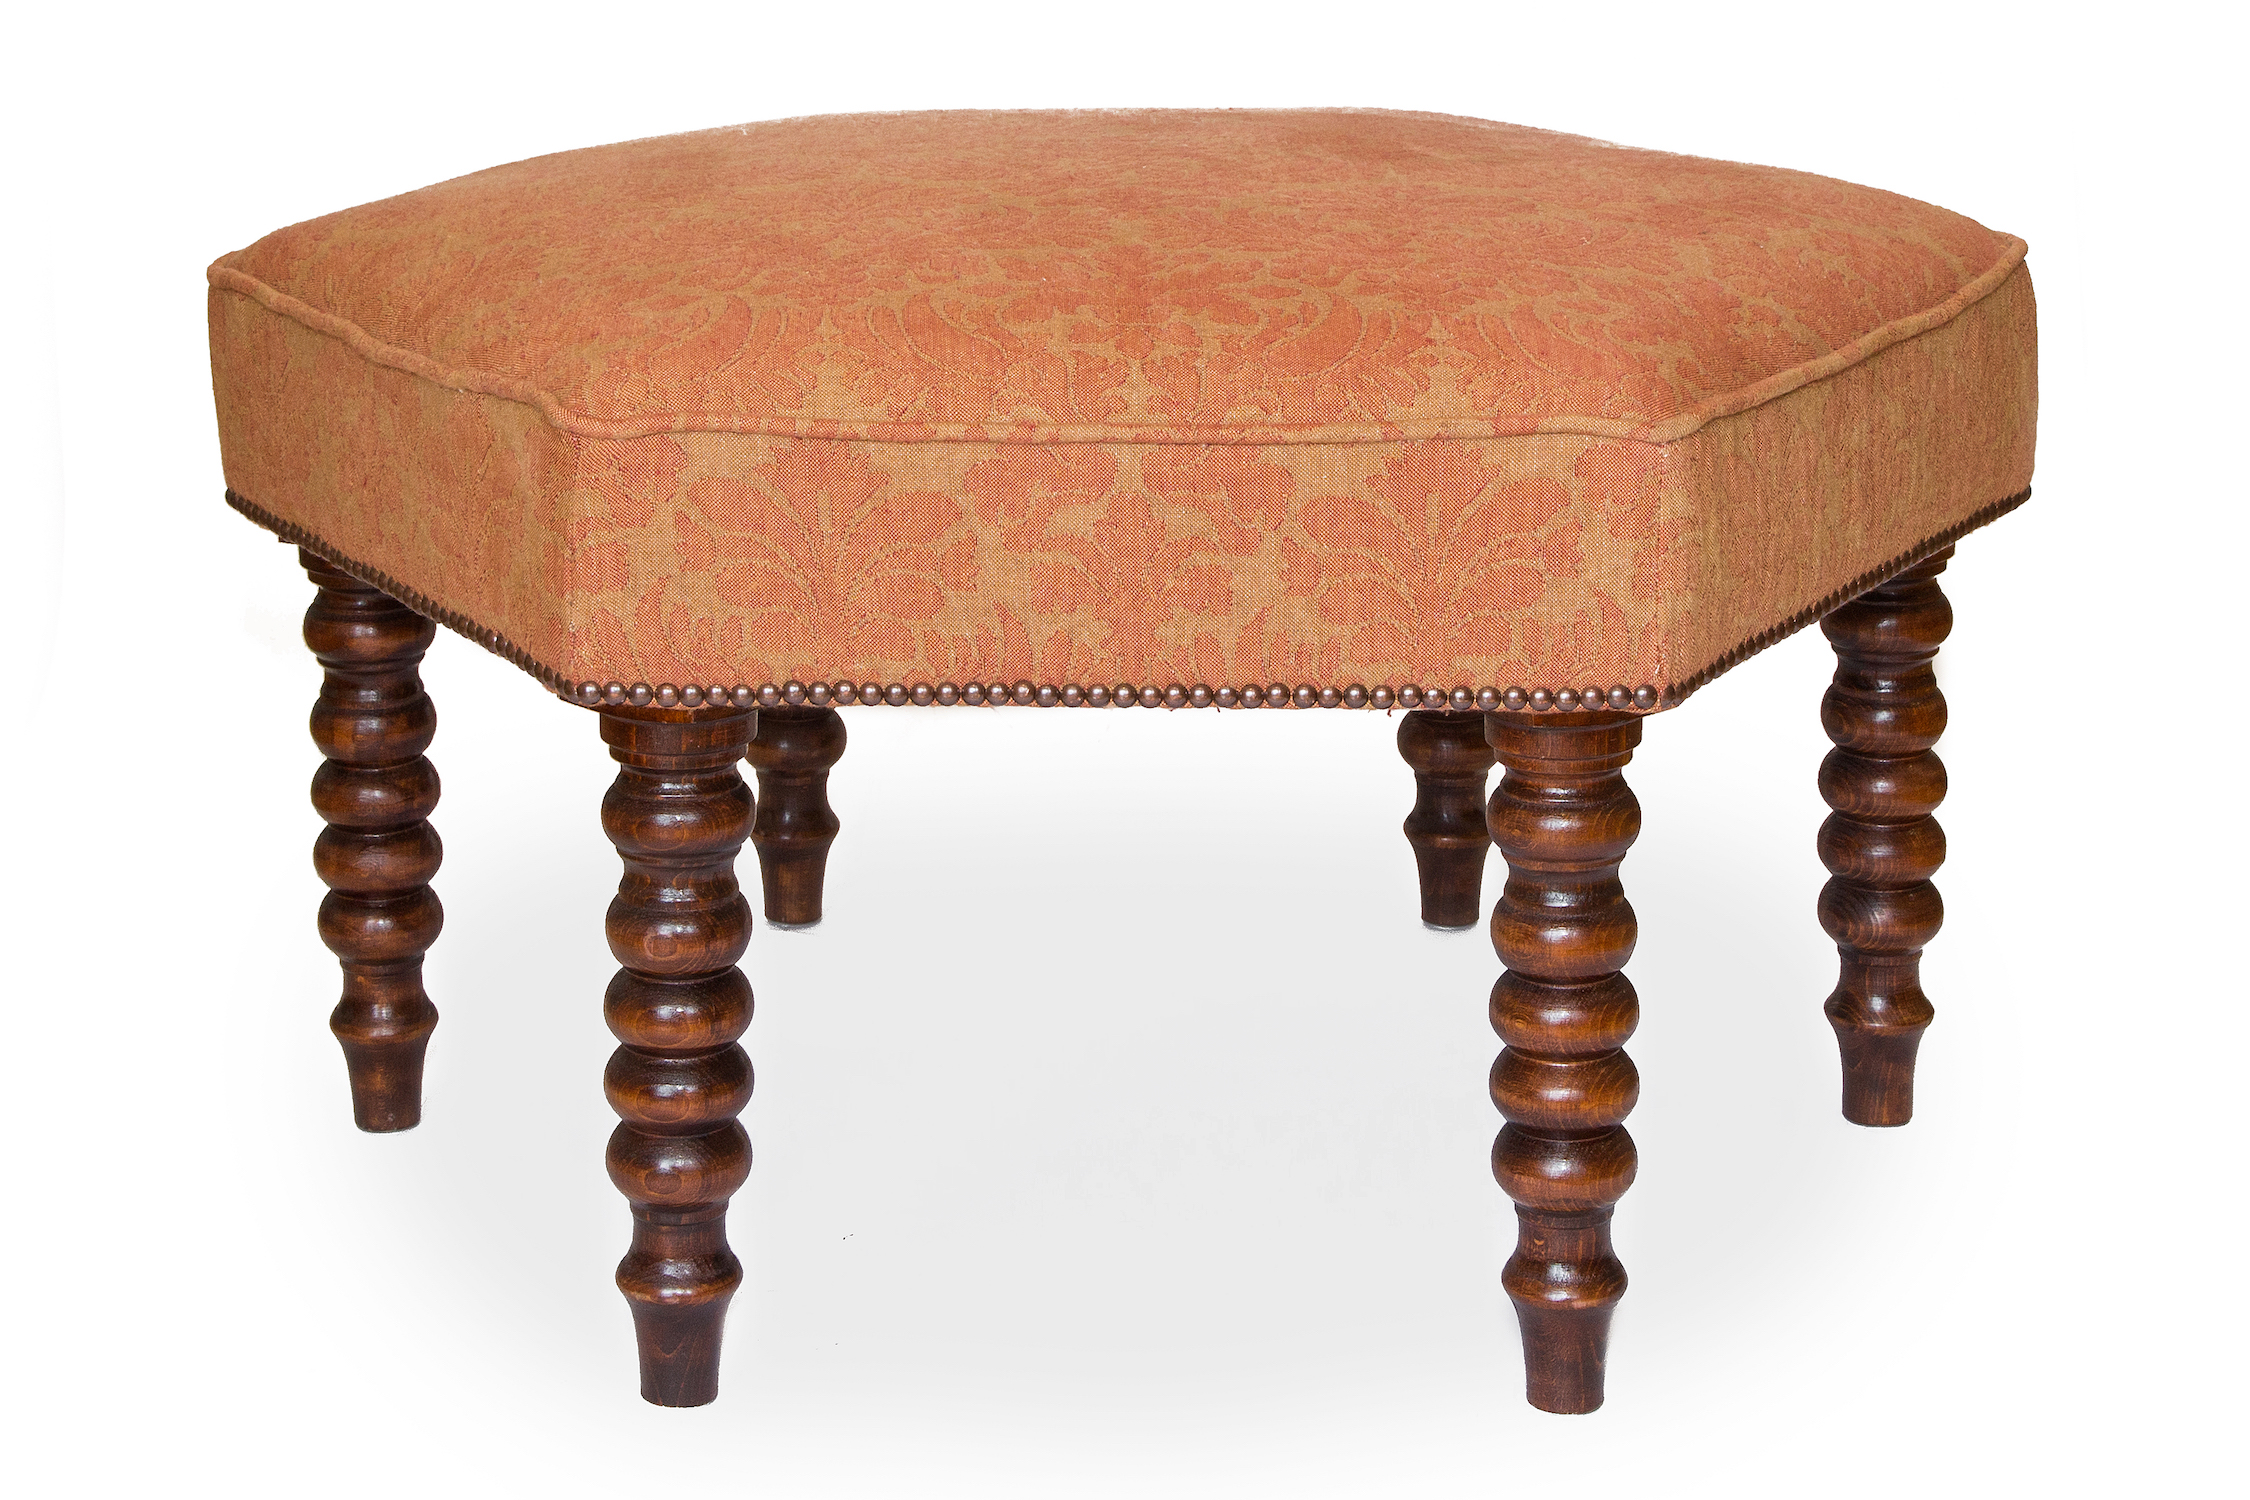 Hexagonal Bordered and Piped Footstool with Bobble Legs and Antique Nailing